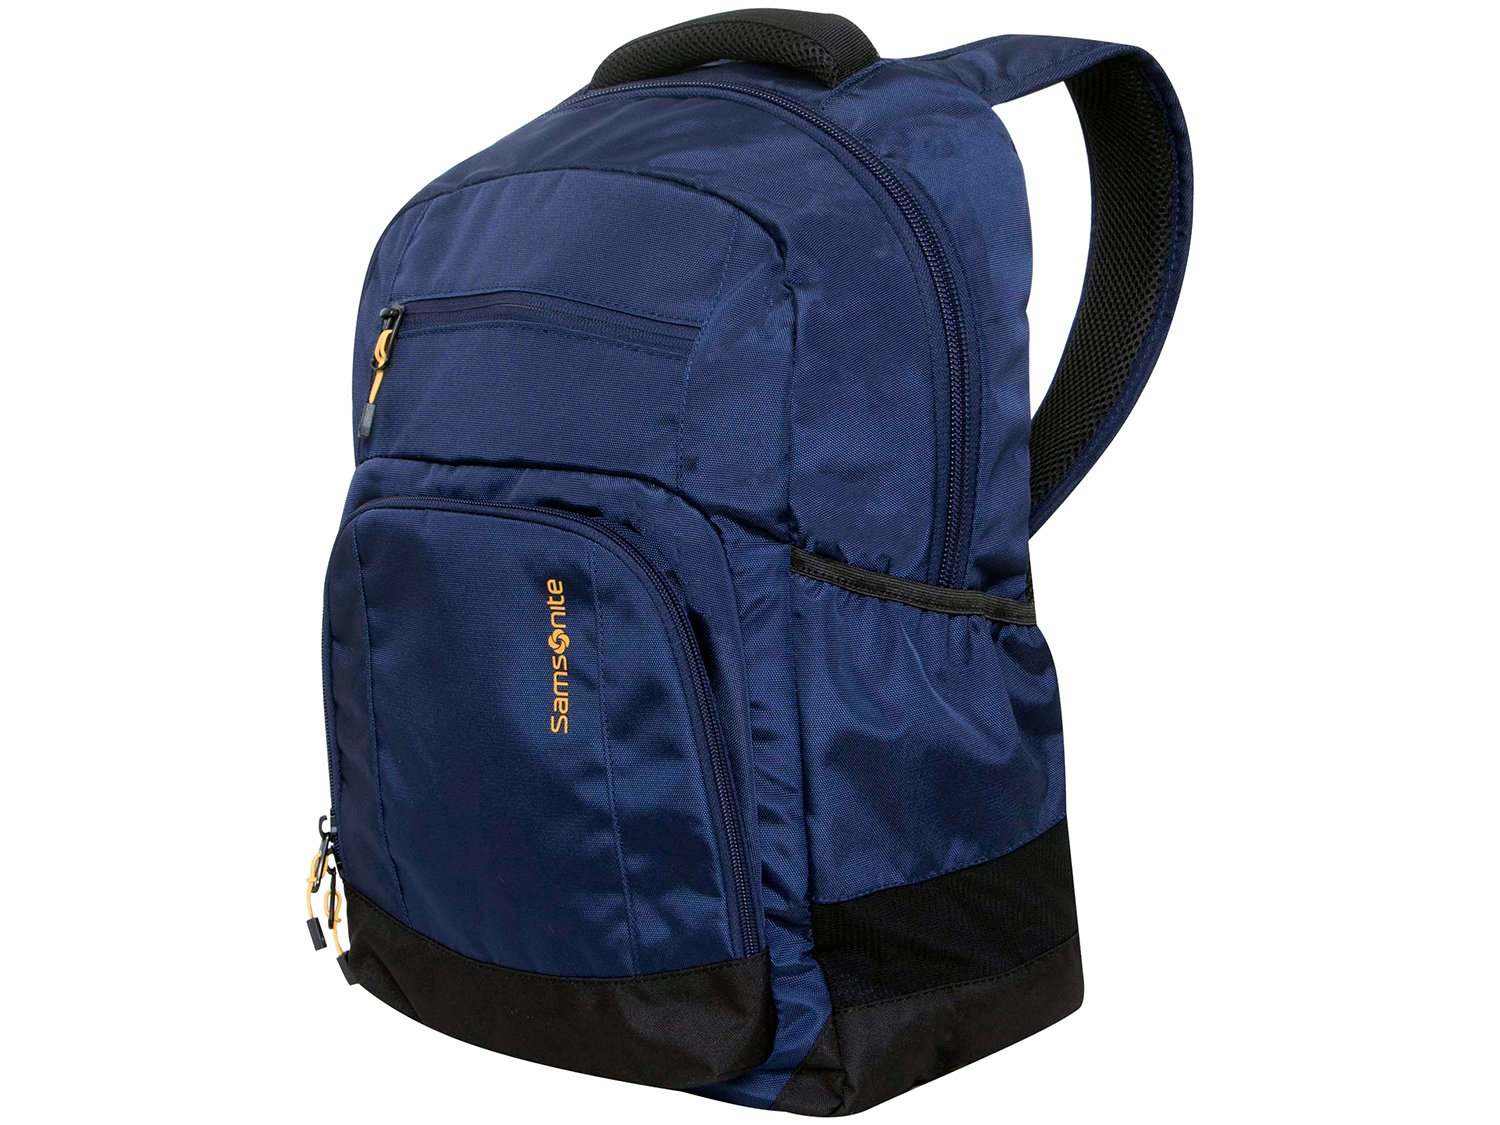 Mochila Samsonite Ultimate Bravo Laptop Masculina - 3